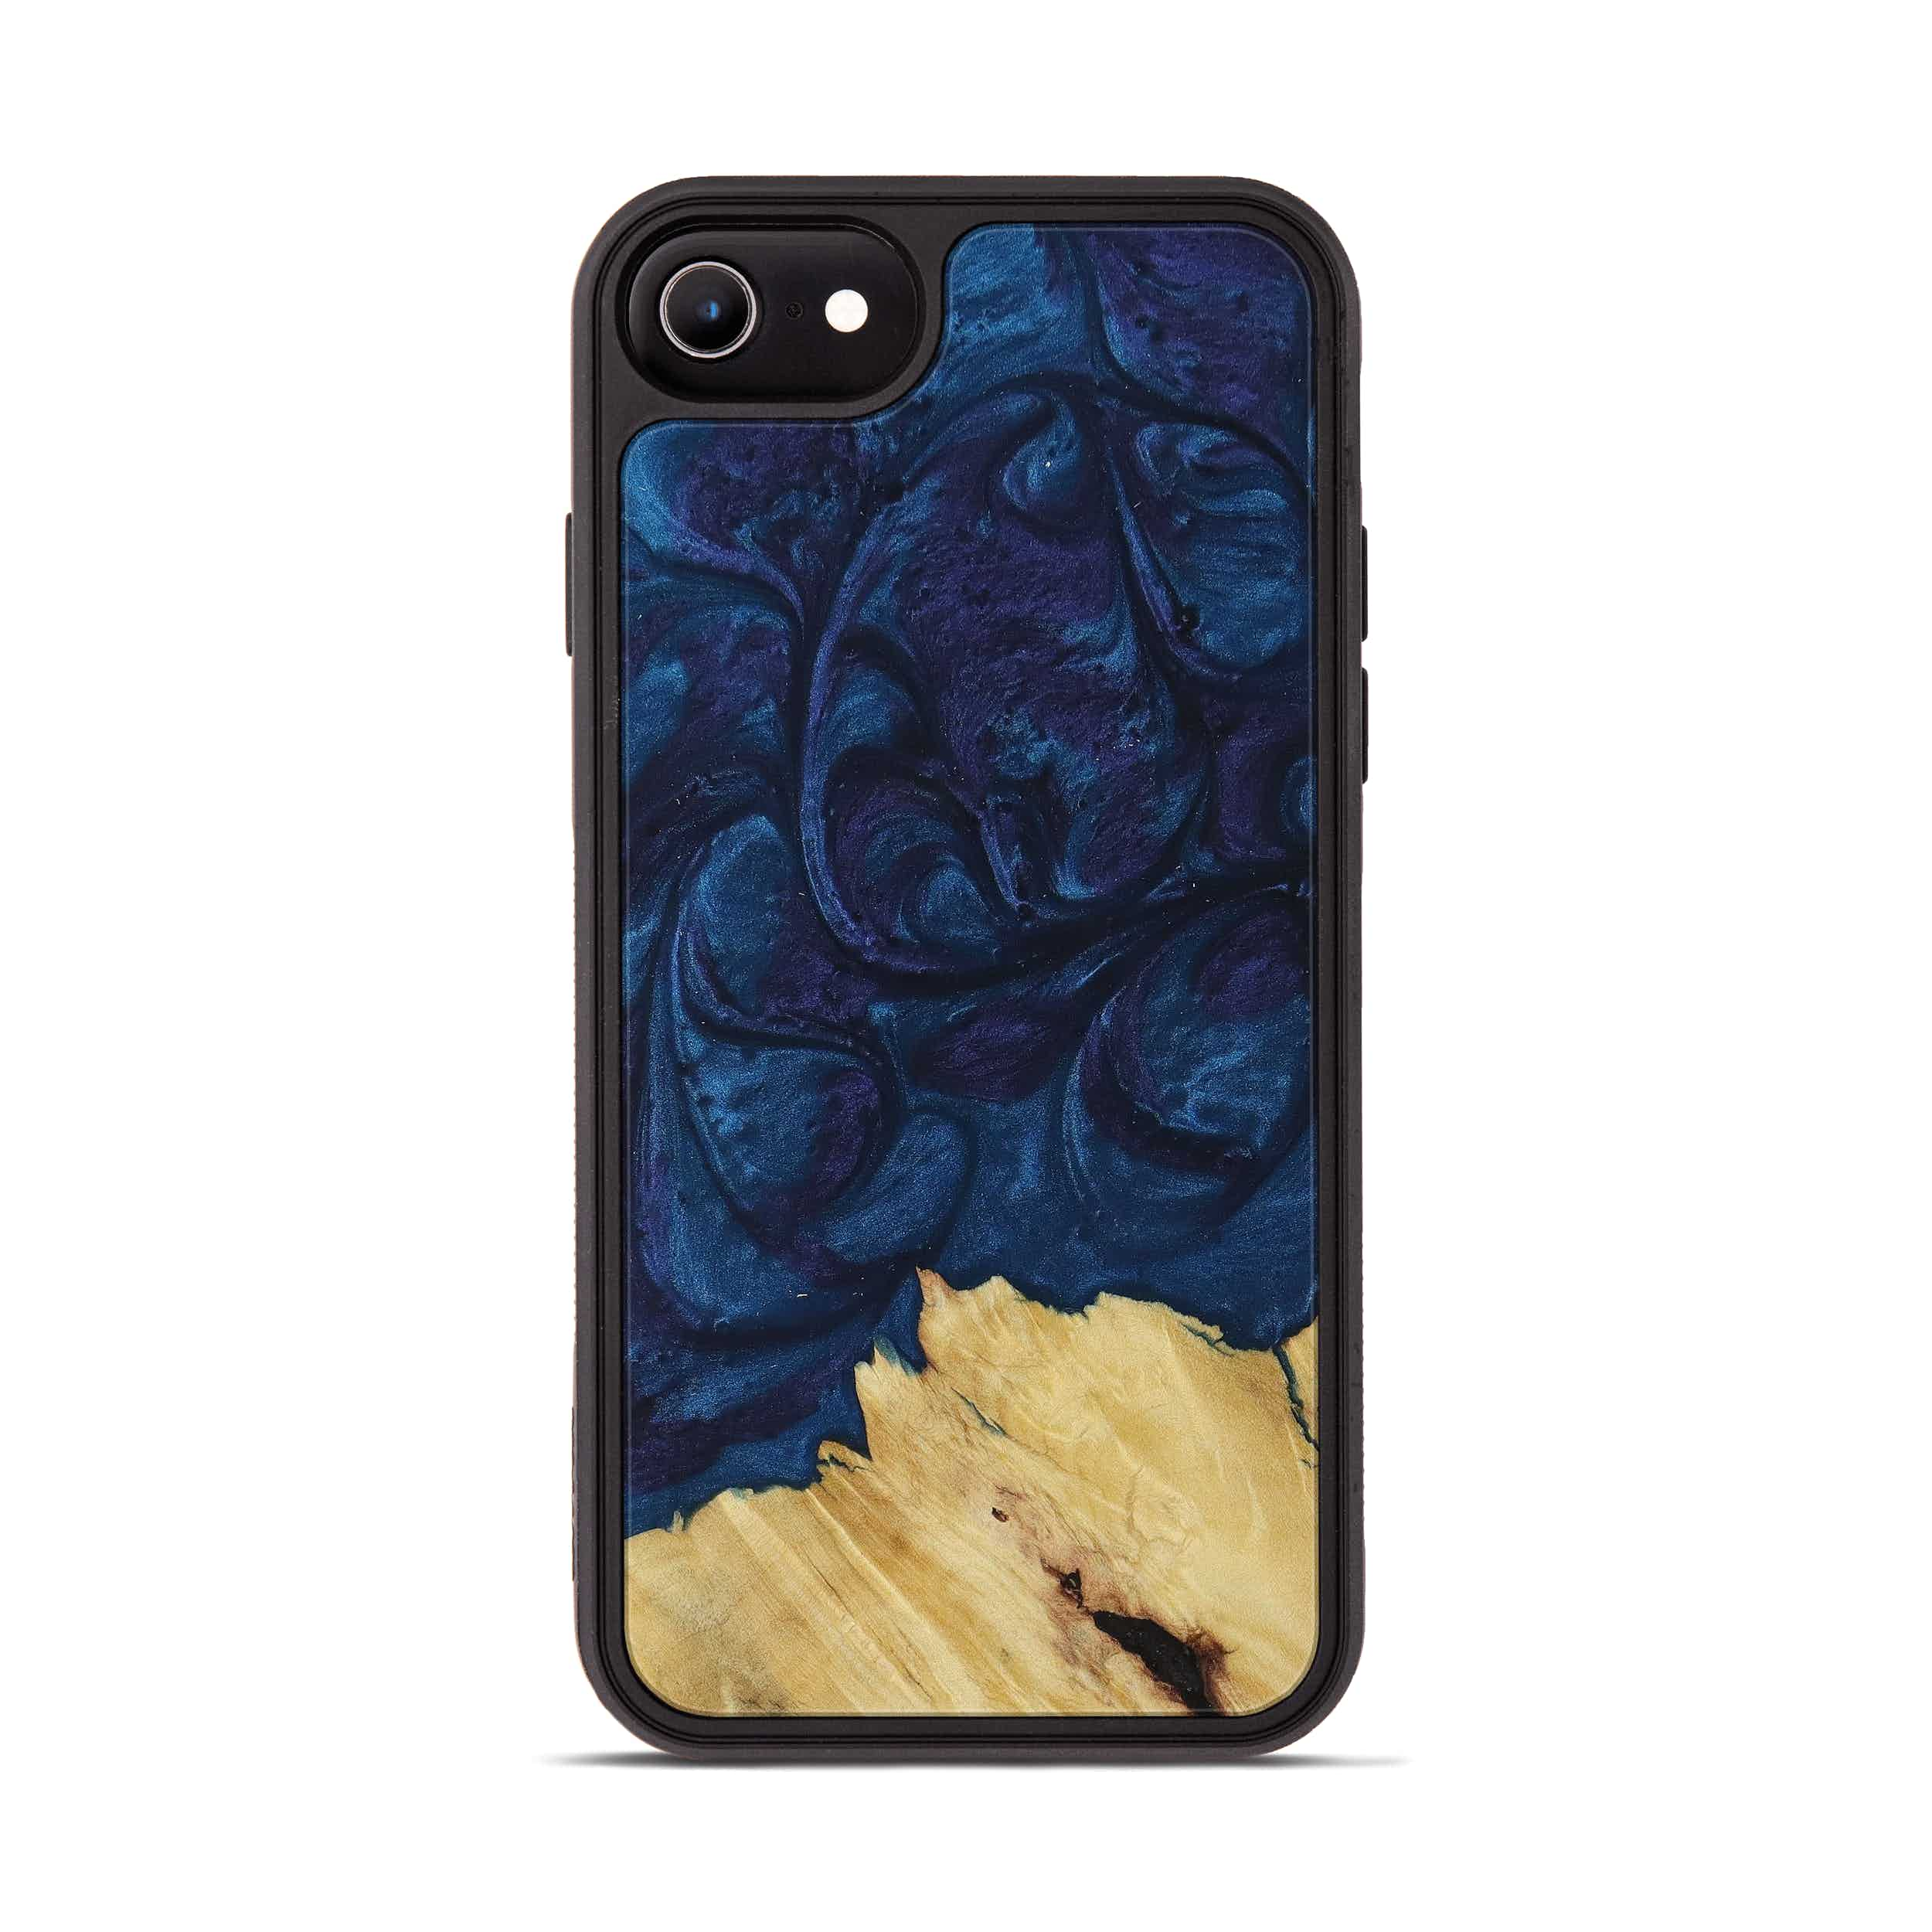 iPhone 6s Wood+Resin Phone Case - Izumi (Dark Blue, 394715)